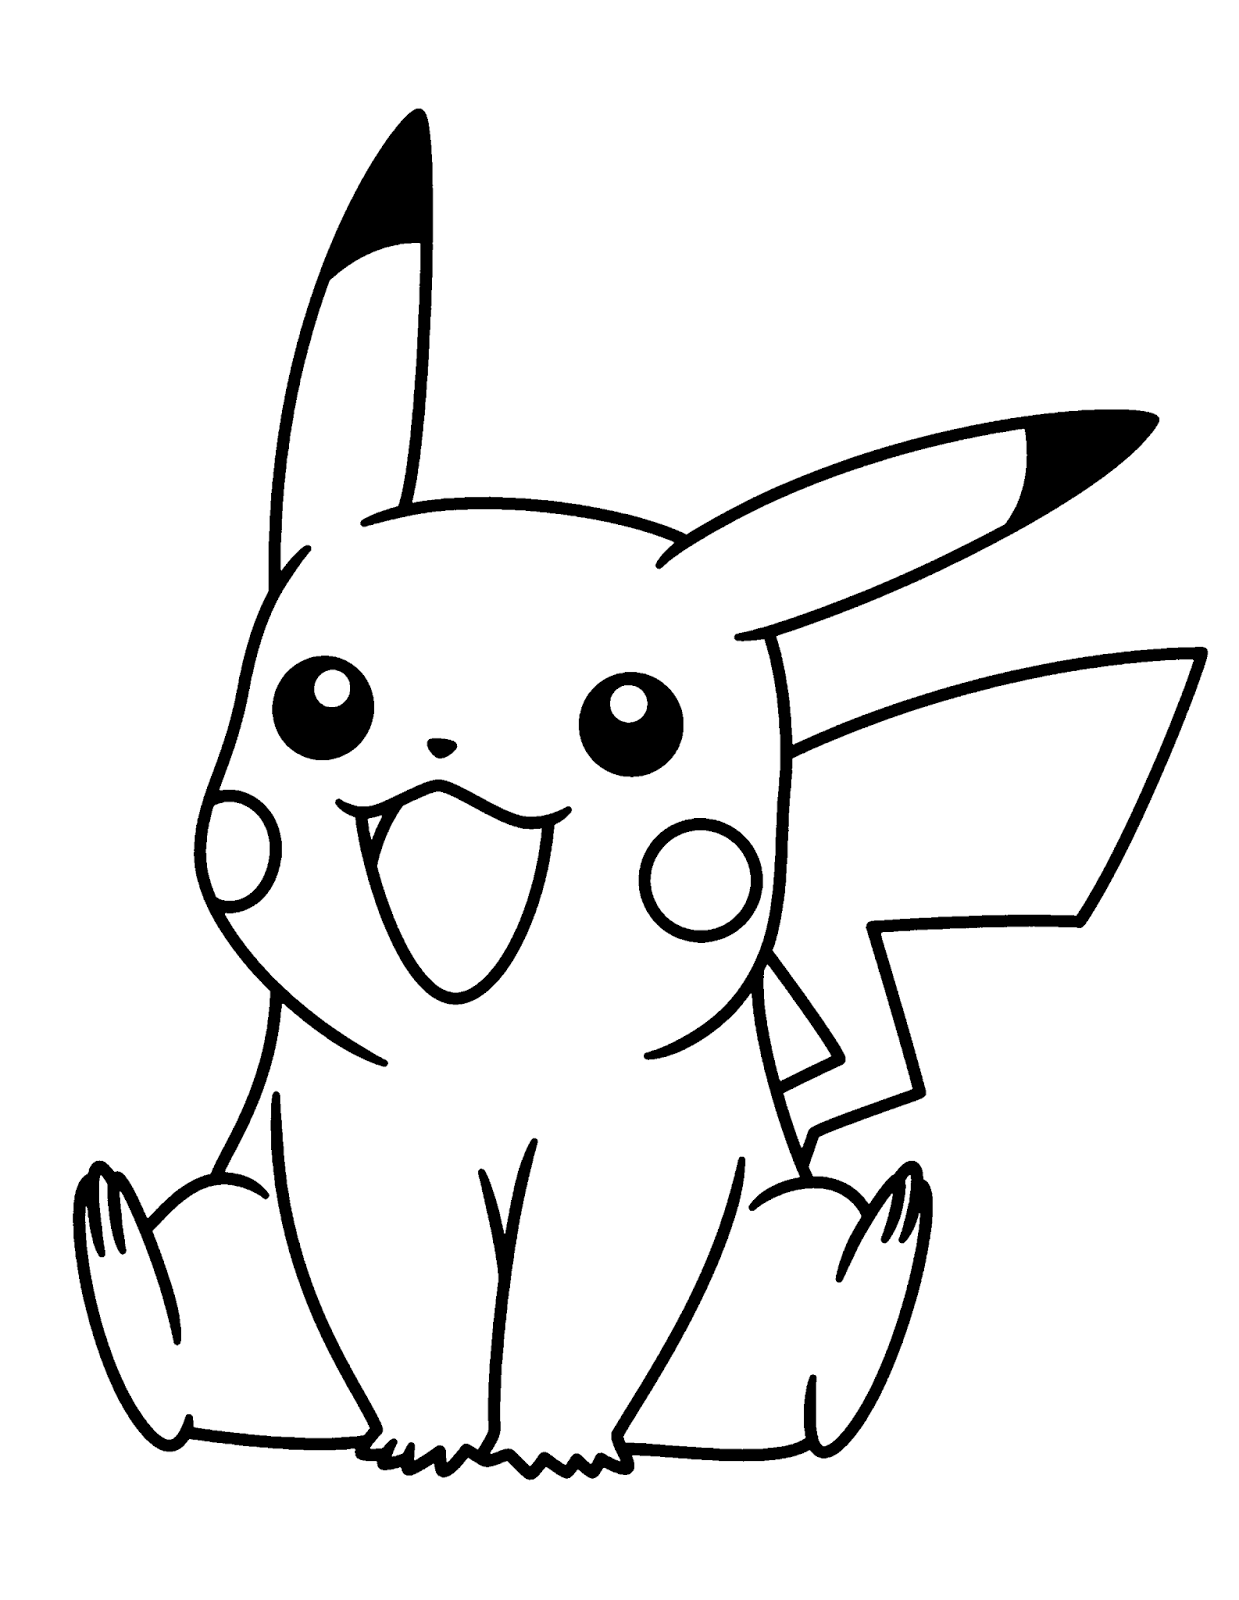 pokemom coloring pages - photo#33